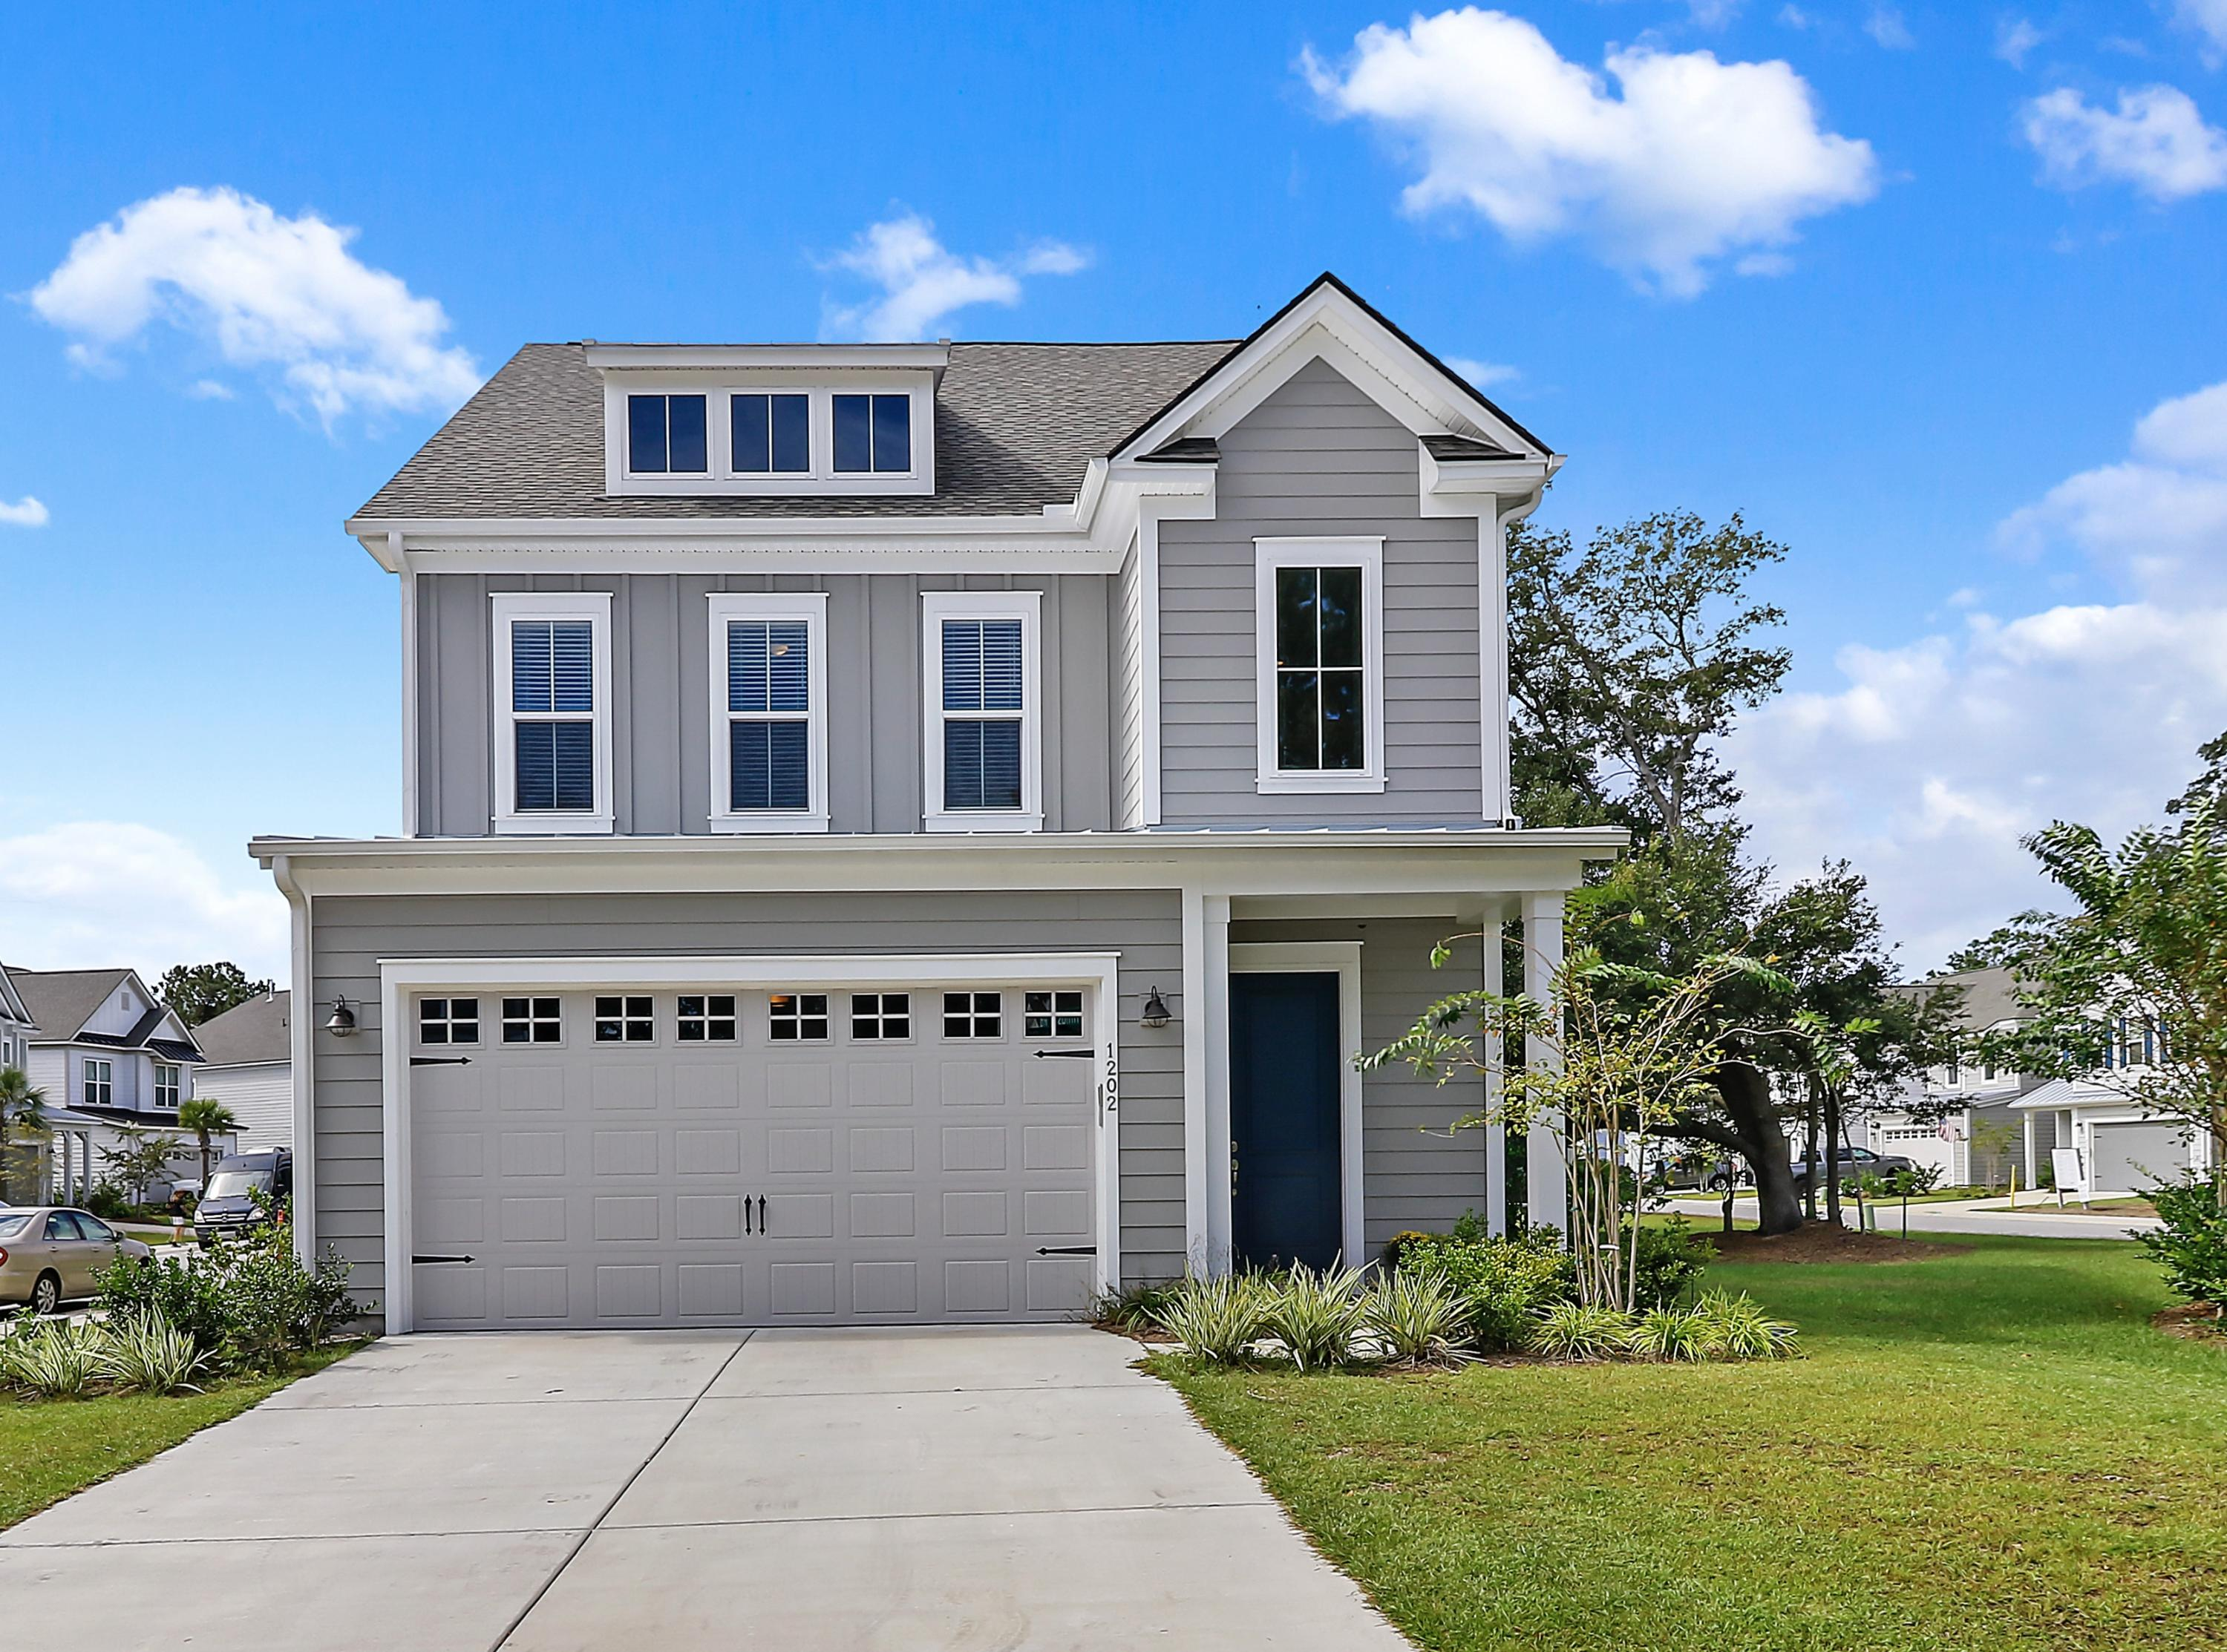 Pointe at Primus Homes For Sale - 1202 Penderlee, Mount Pleasant, SC - 0